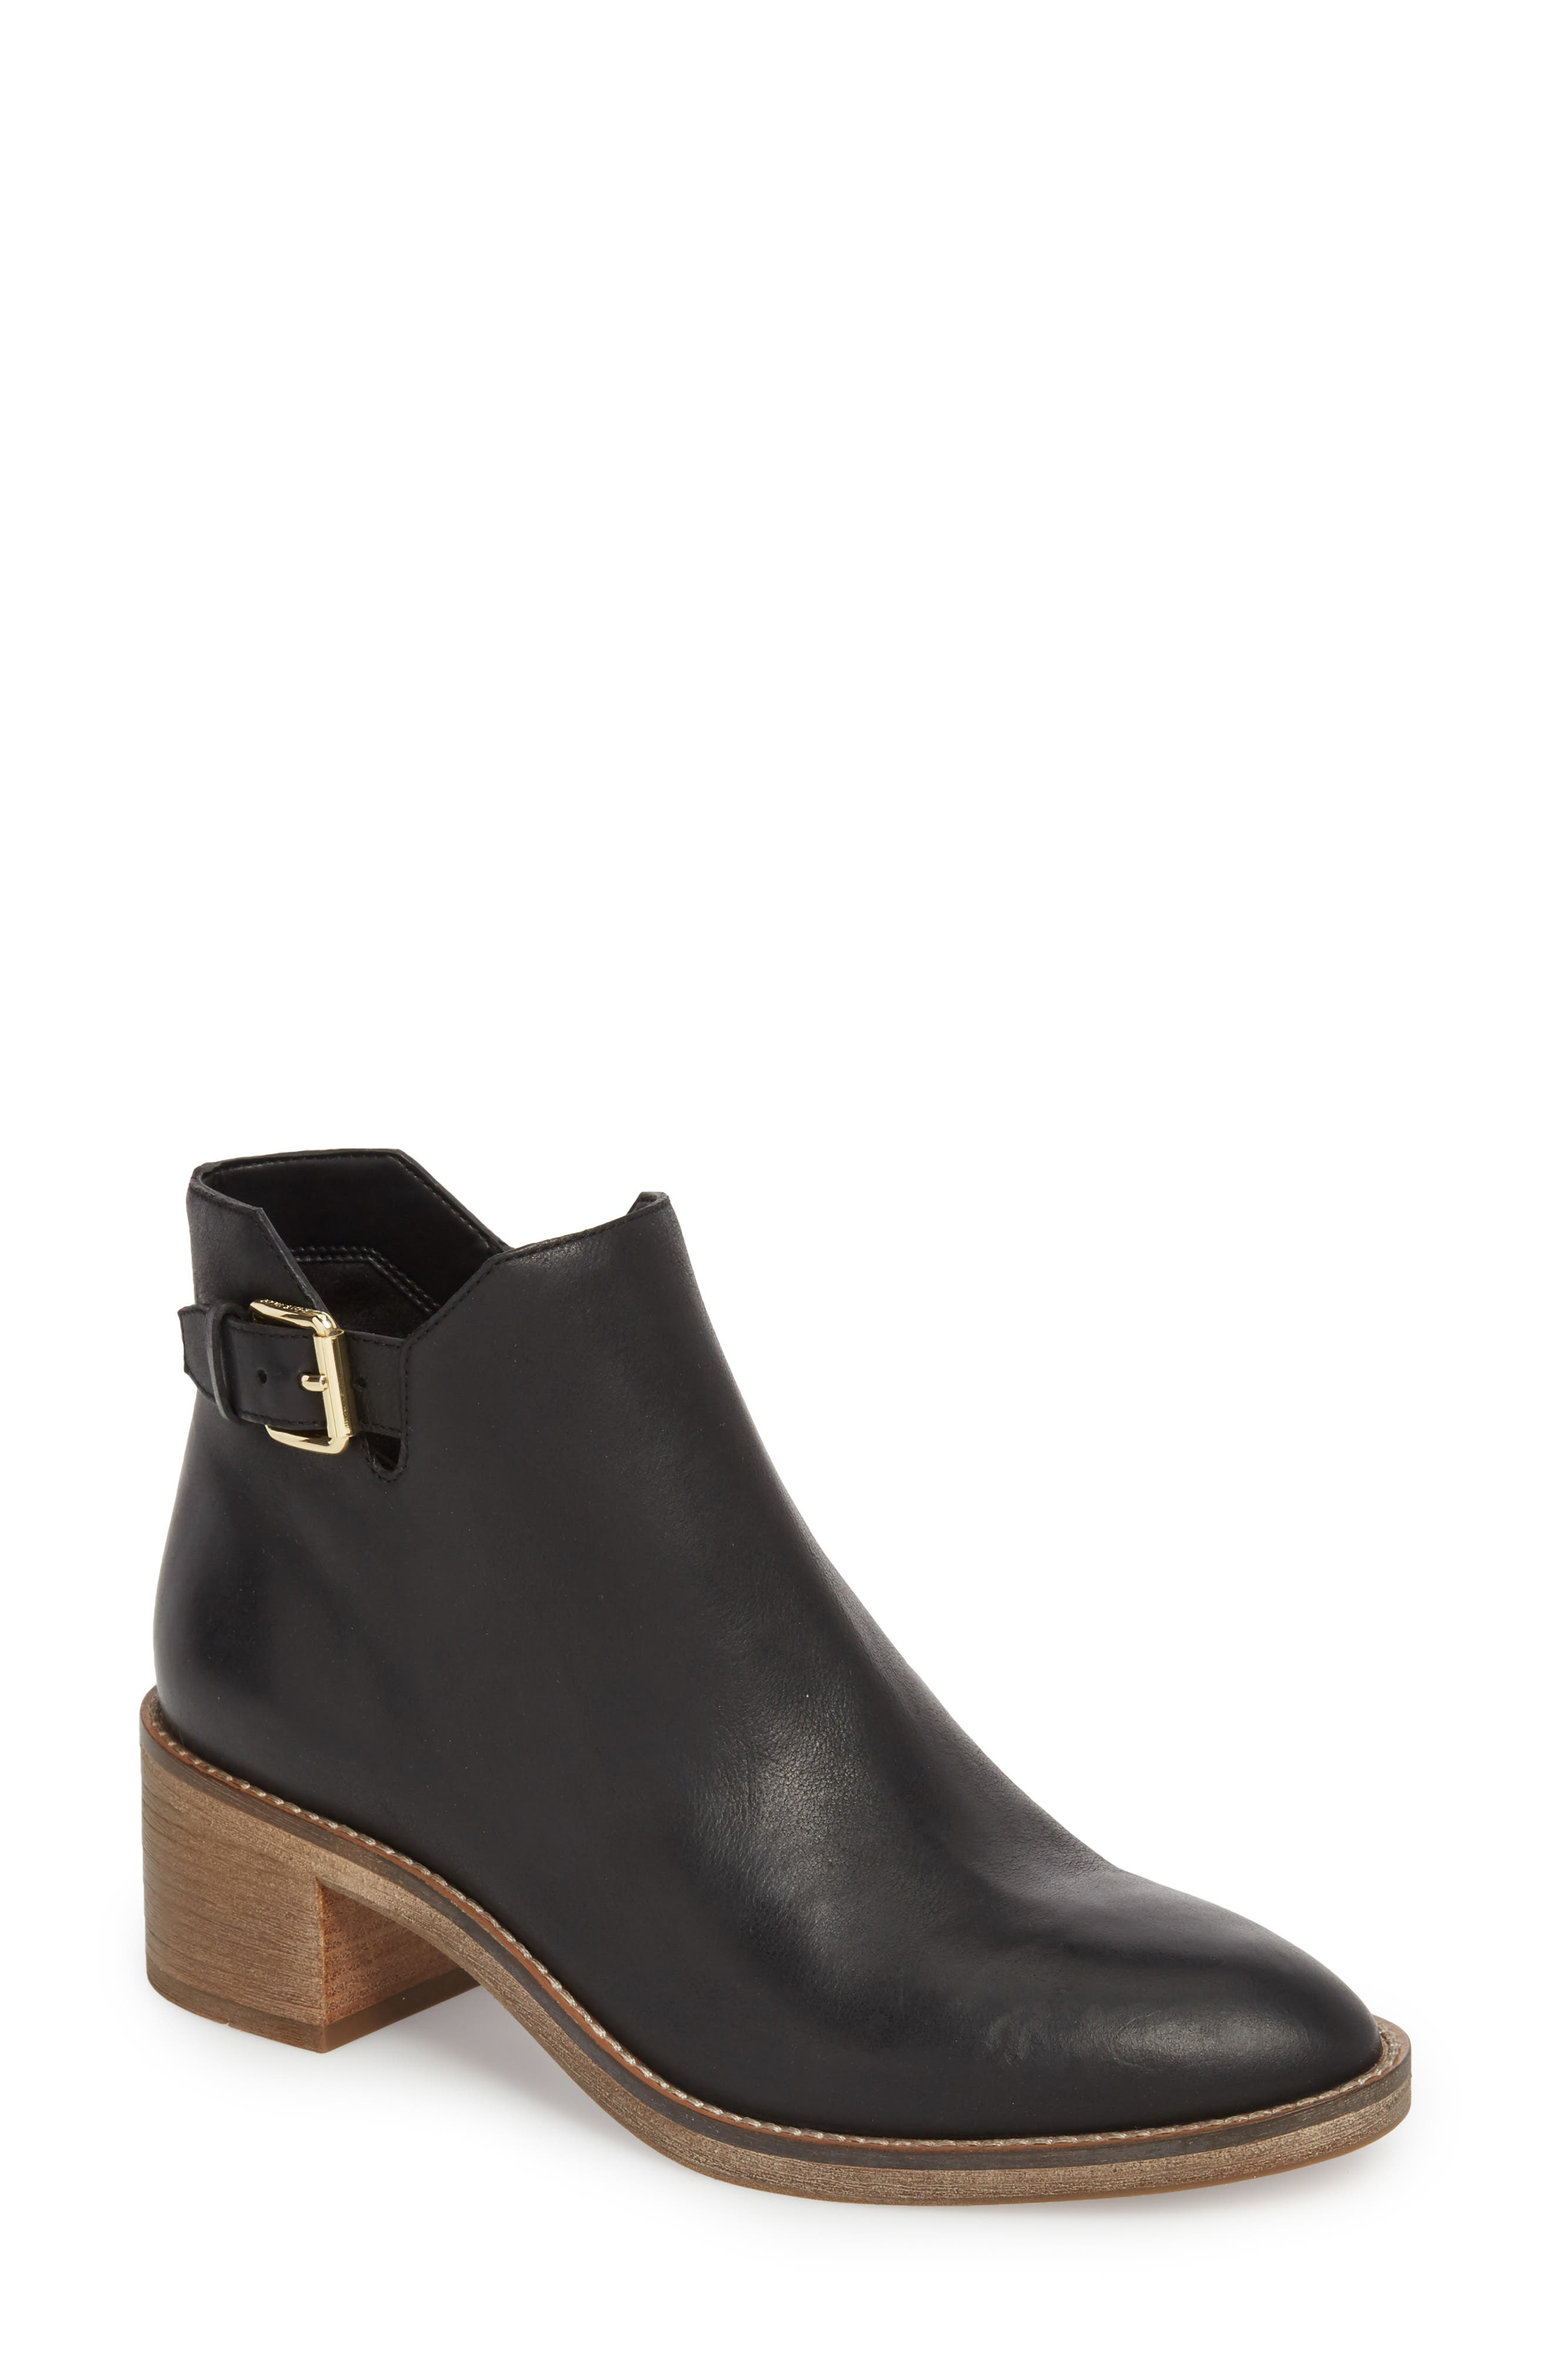 COLE HAAN Harrington Grand Buckle Bootie, Main, color, BLACK LEATHER